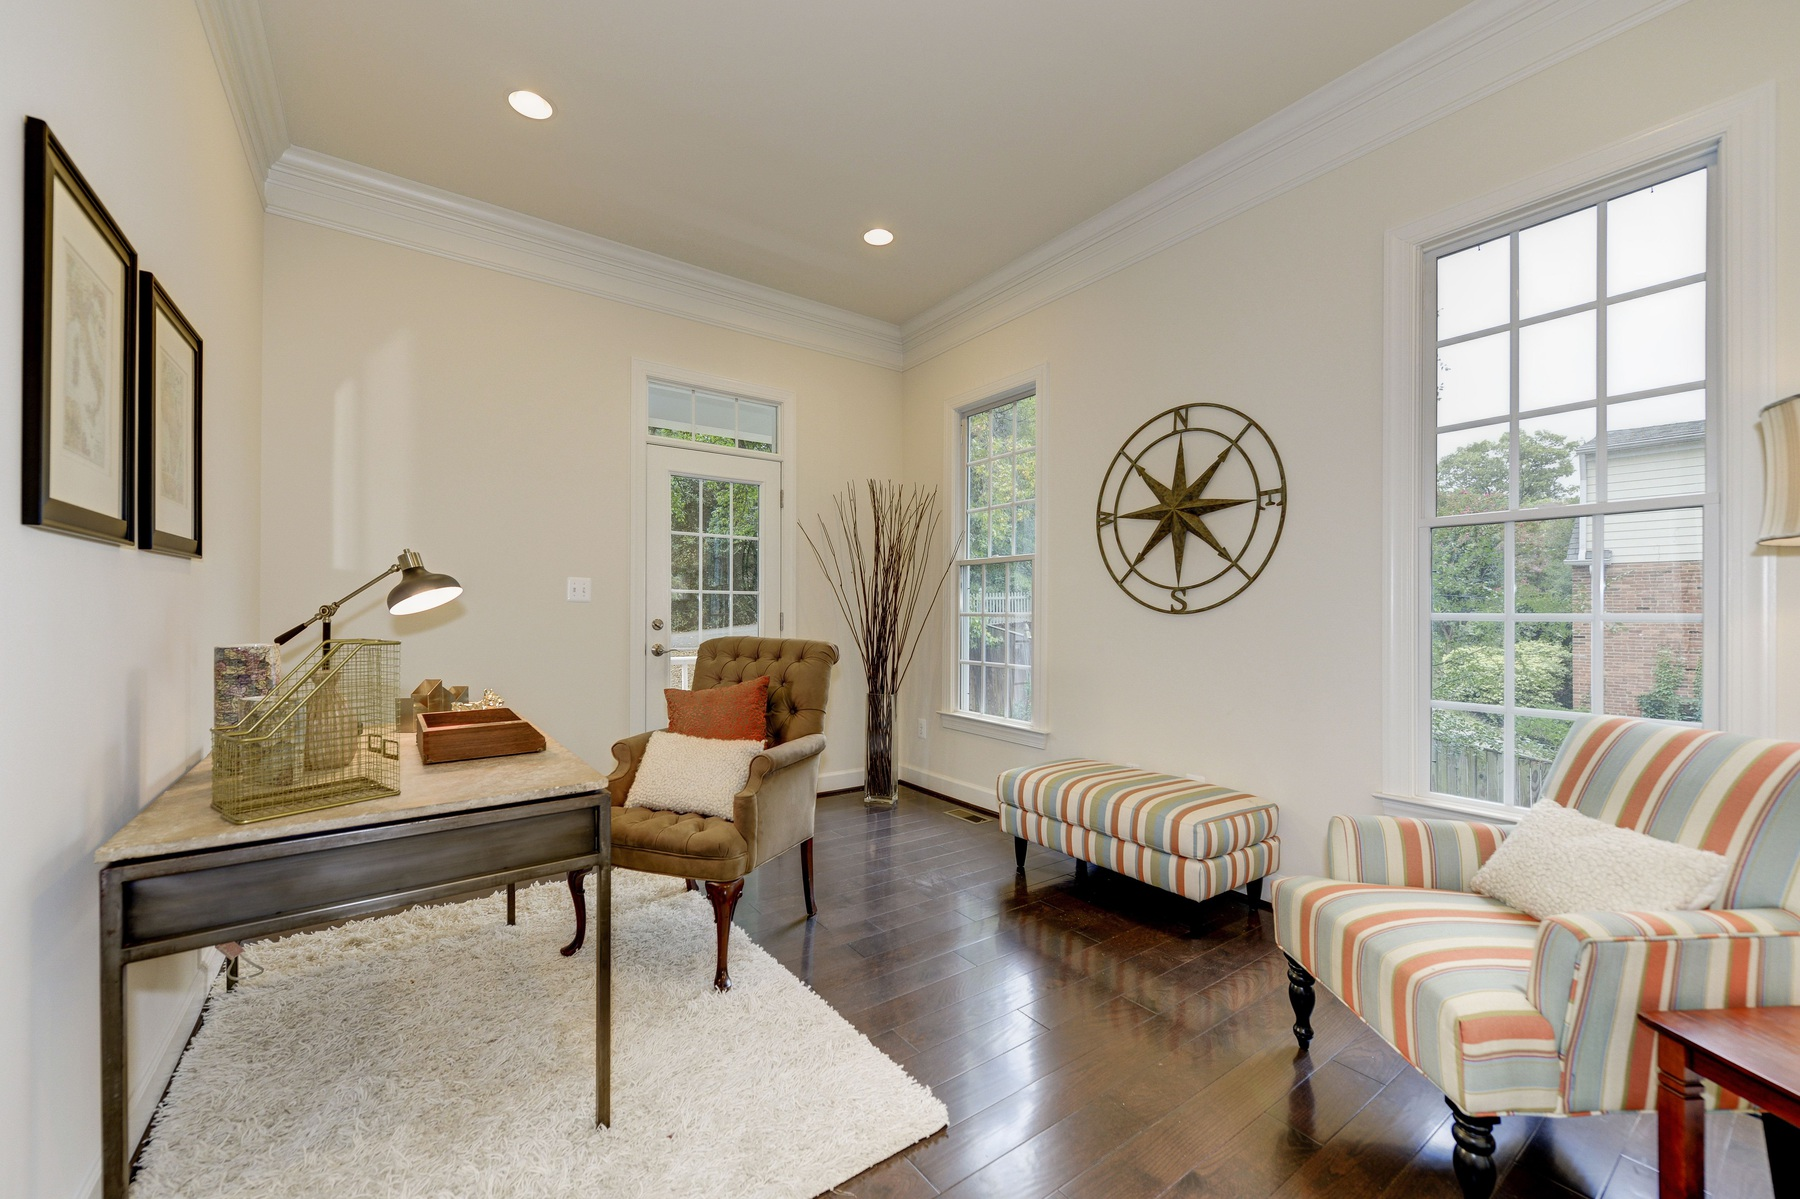 Additional photo for property listing at Cooper Dawson 104 Quaker Lane N Alexandria, Virginia 22304 United States